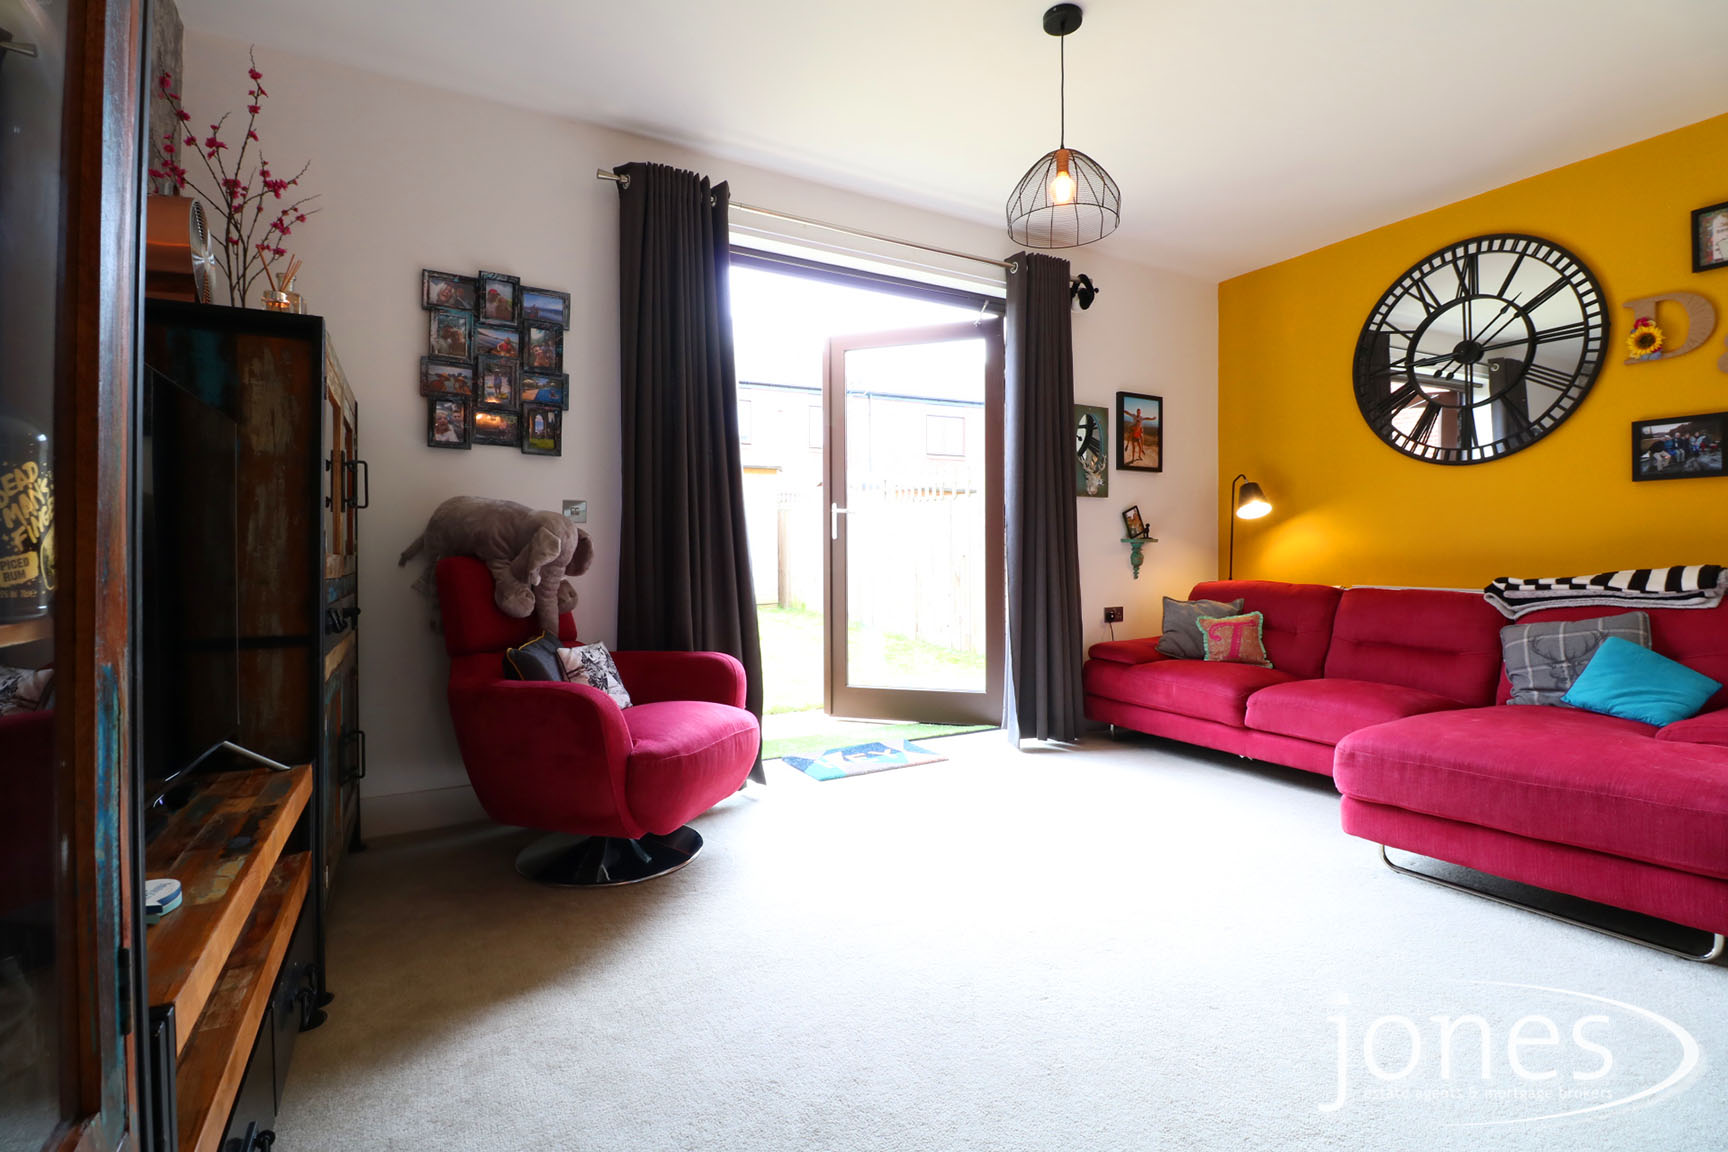 Home for Sale Let - Photo 03 Brookby Court, ,Stockton on Tees,TS18 2SX